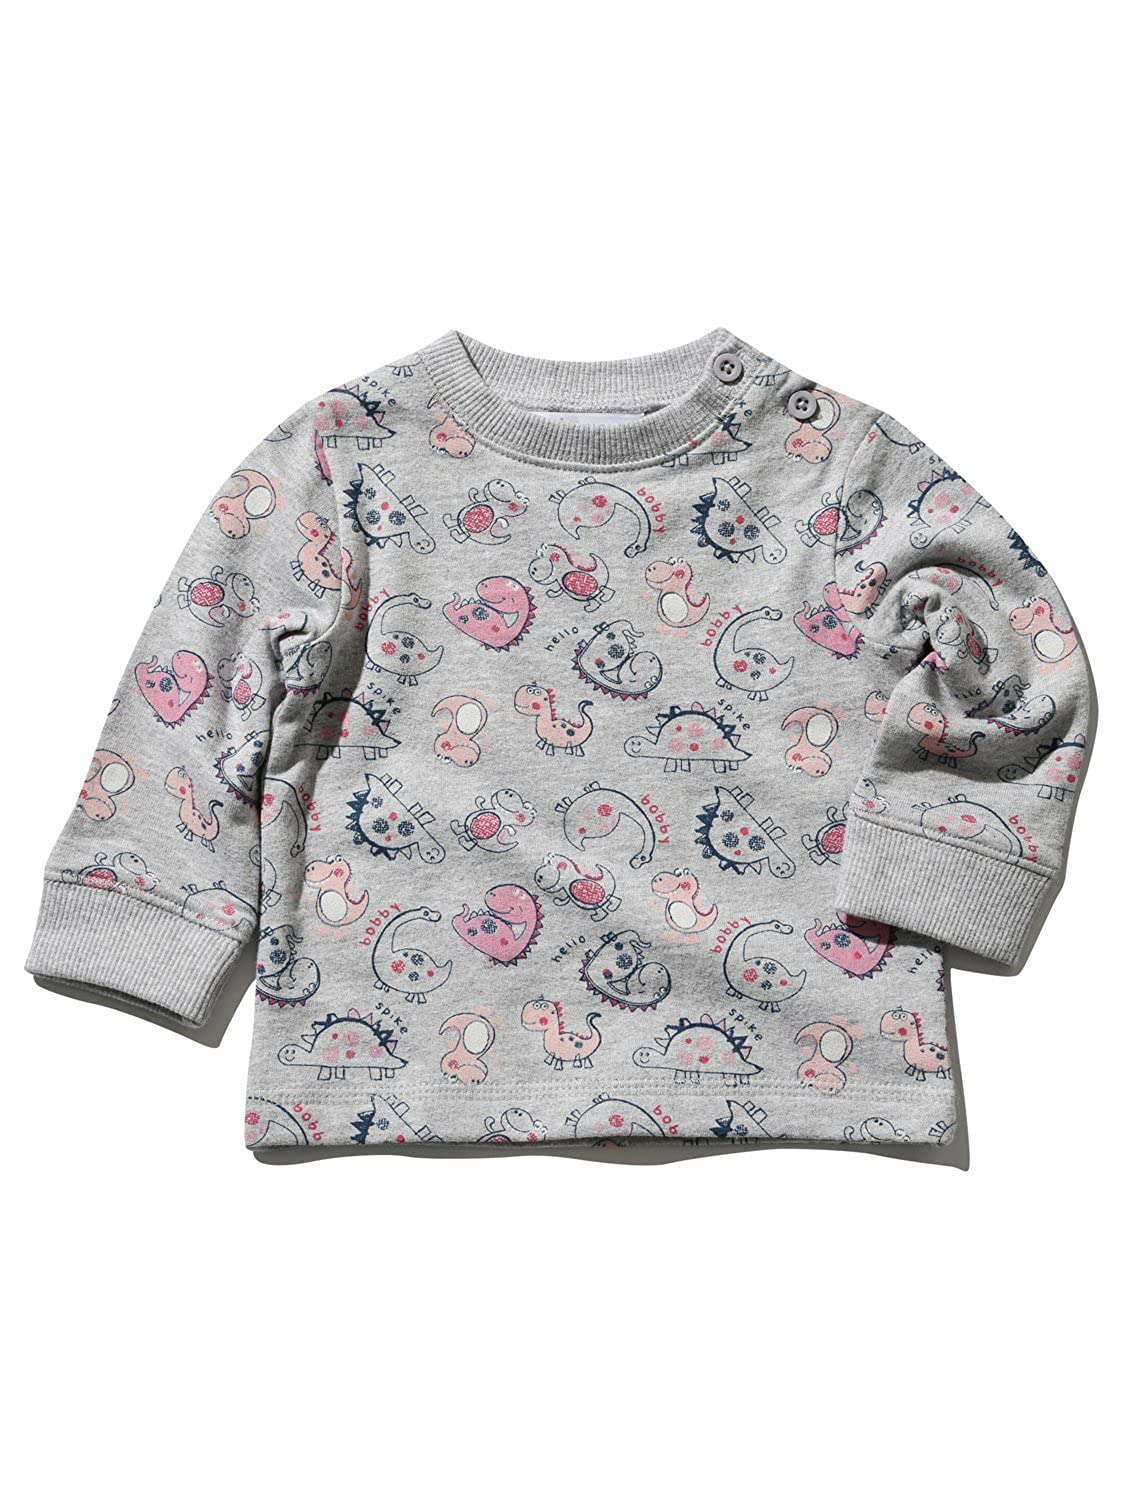 M&Co Baby Girl Cotton Long Sleeve Crew Neck Dinosaur Print Side Neck Button Sweater